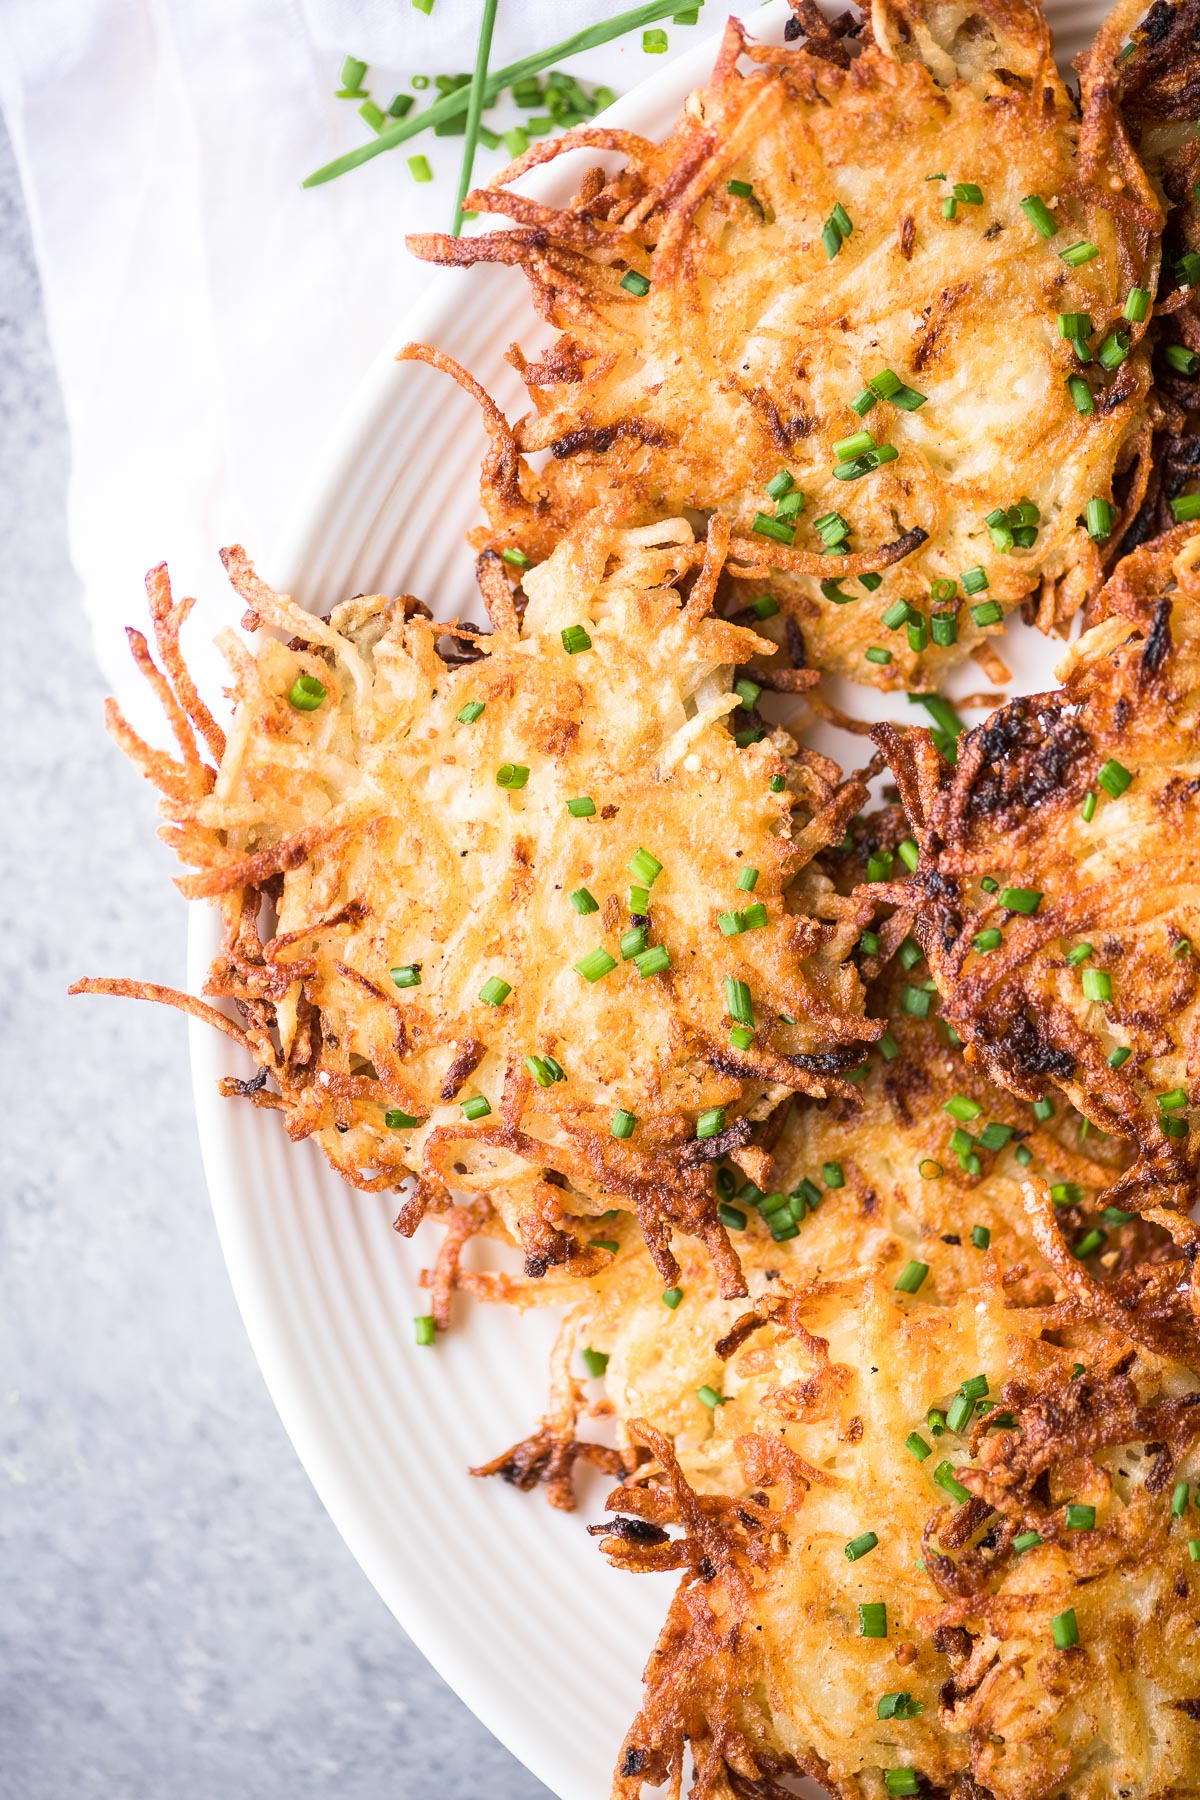 Extra crispy potato latkes on a plate